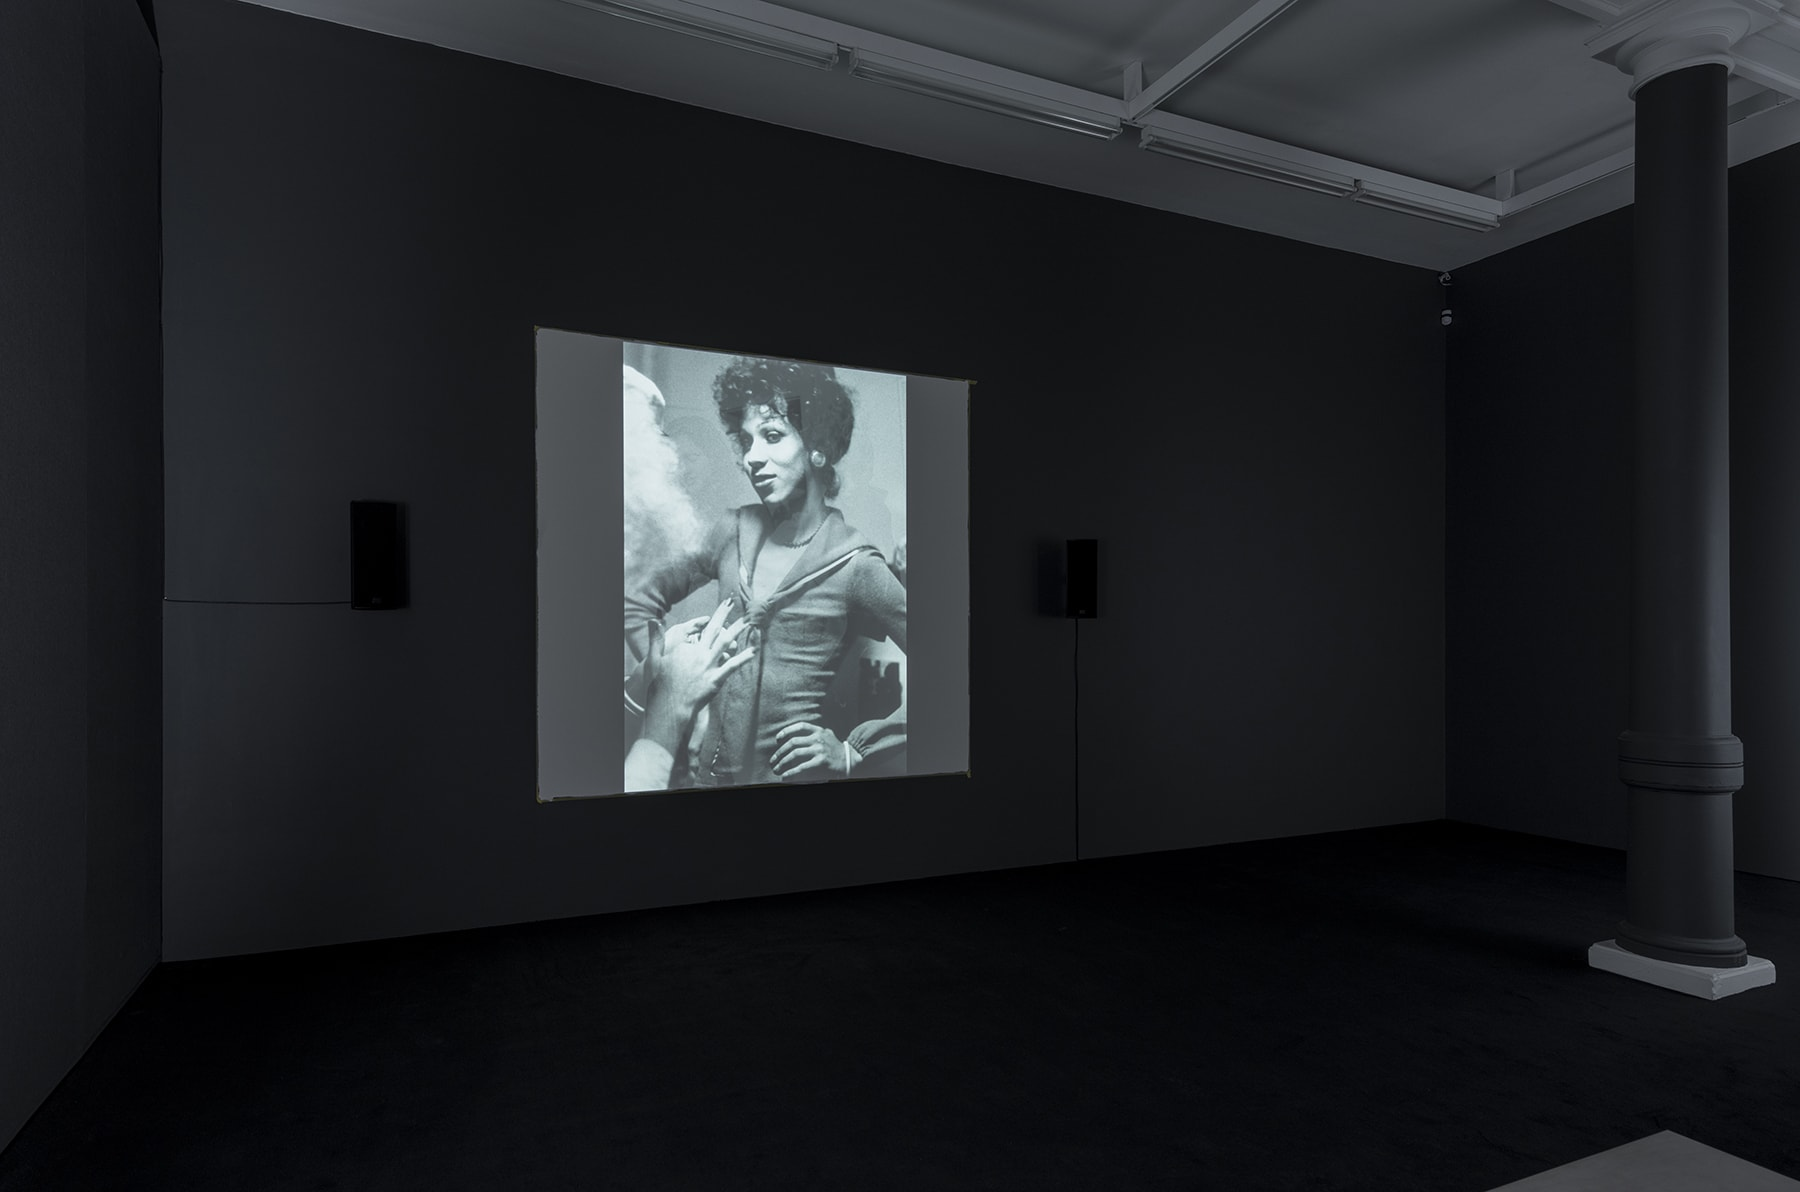 A black and white projection of 2 people talking, one with their back to the screen and the other with hands on their hips.